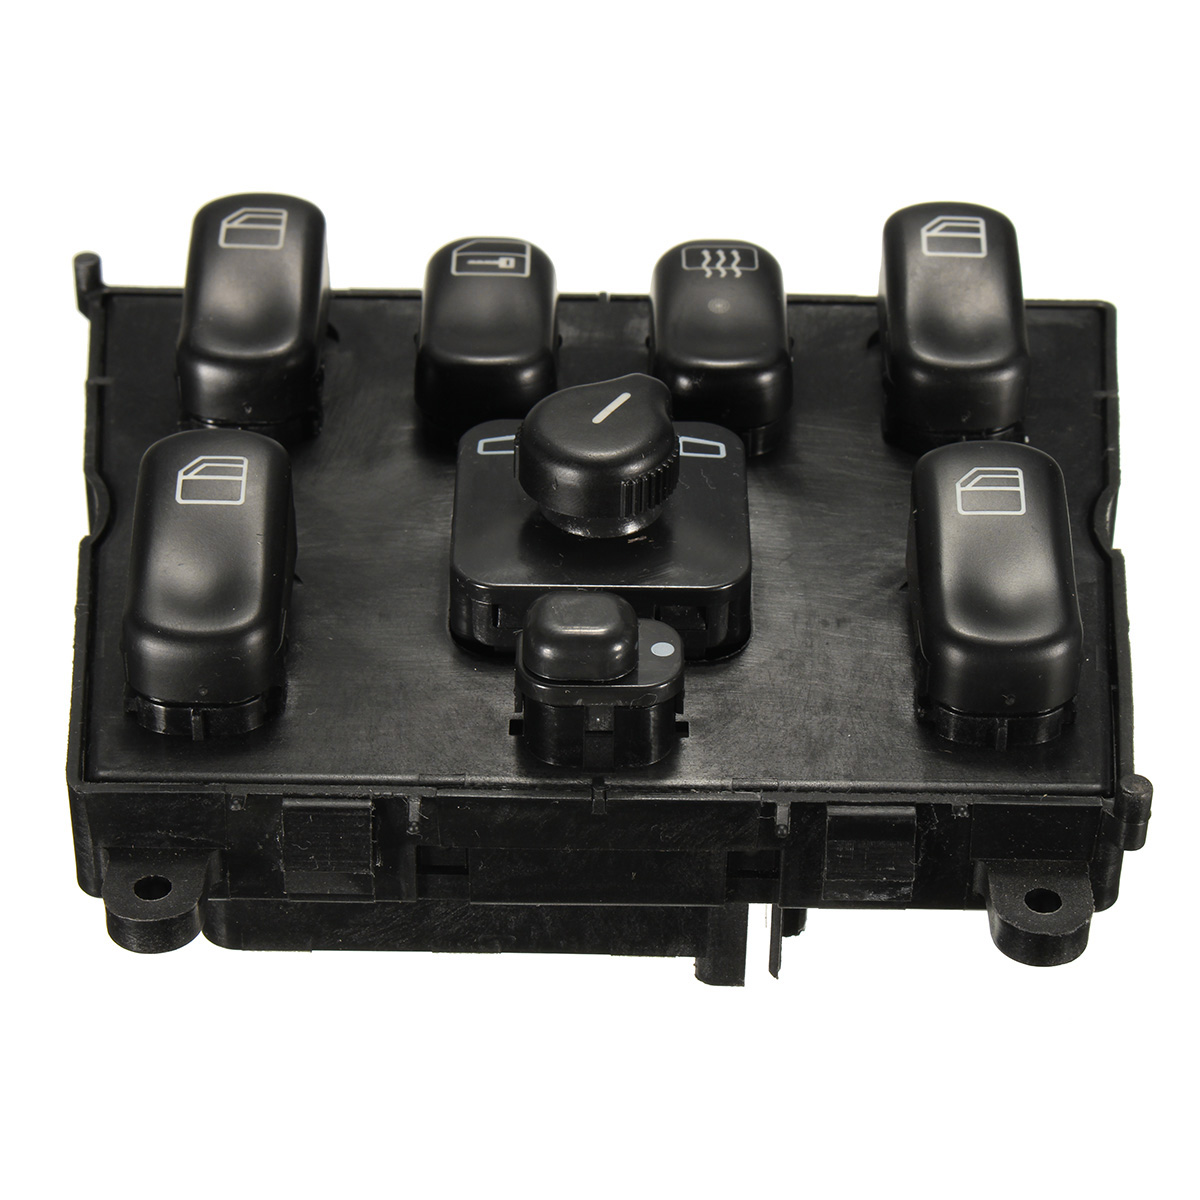 Electric Power Window Master Switch Console for MERCEDES ML430 ML320 ML55 1998-2003 A1638206610 163 8206610 недорго, оригинальная цена